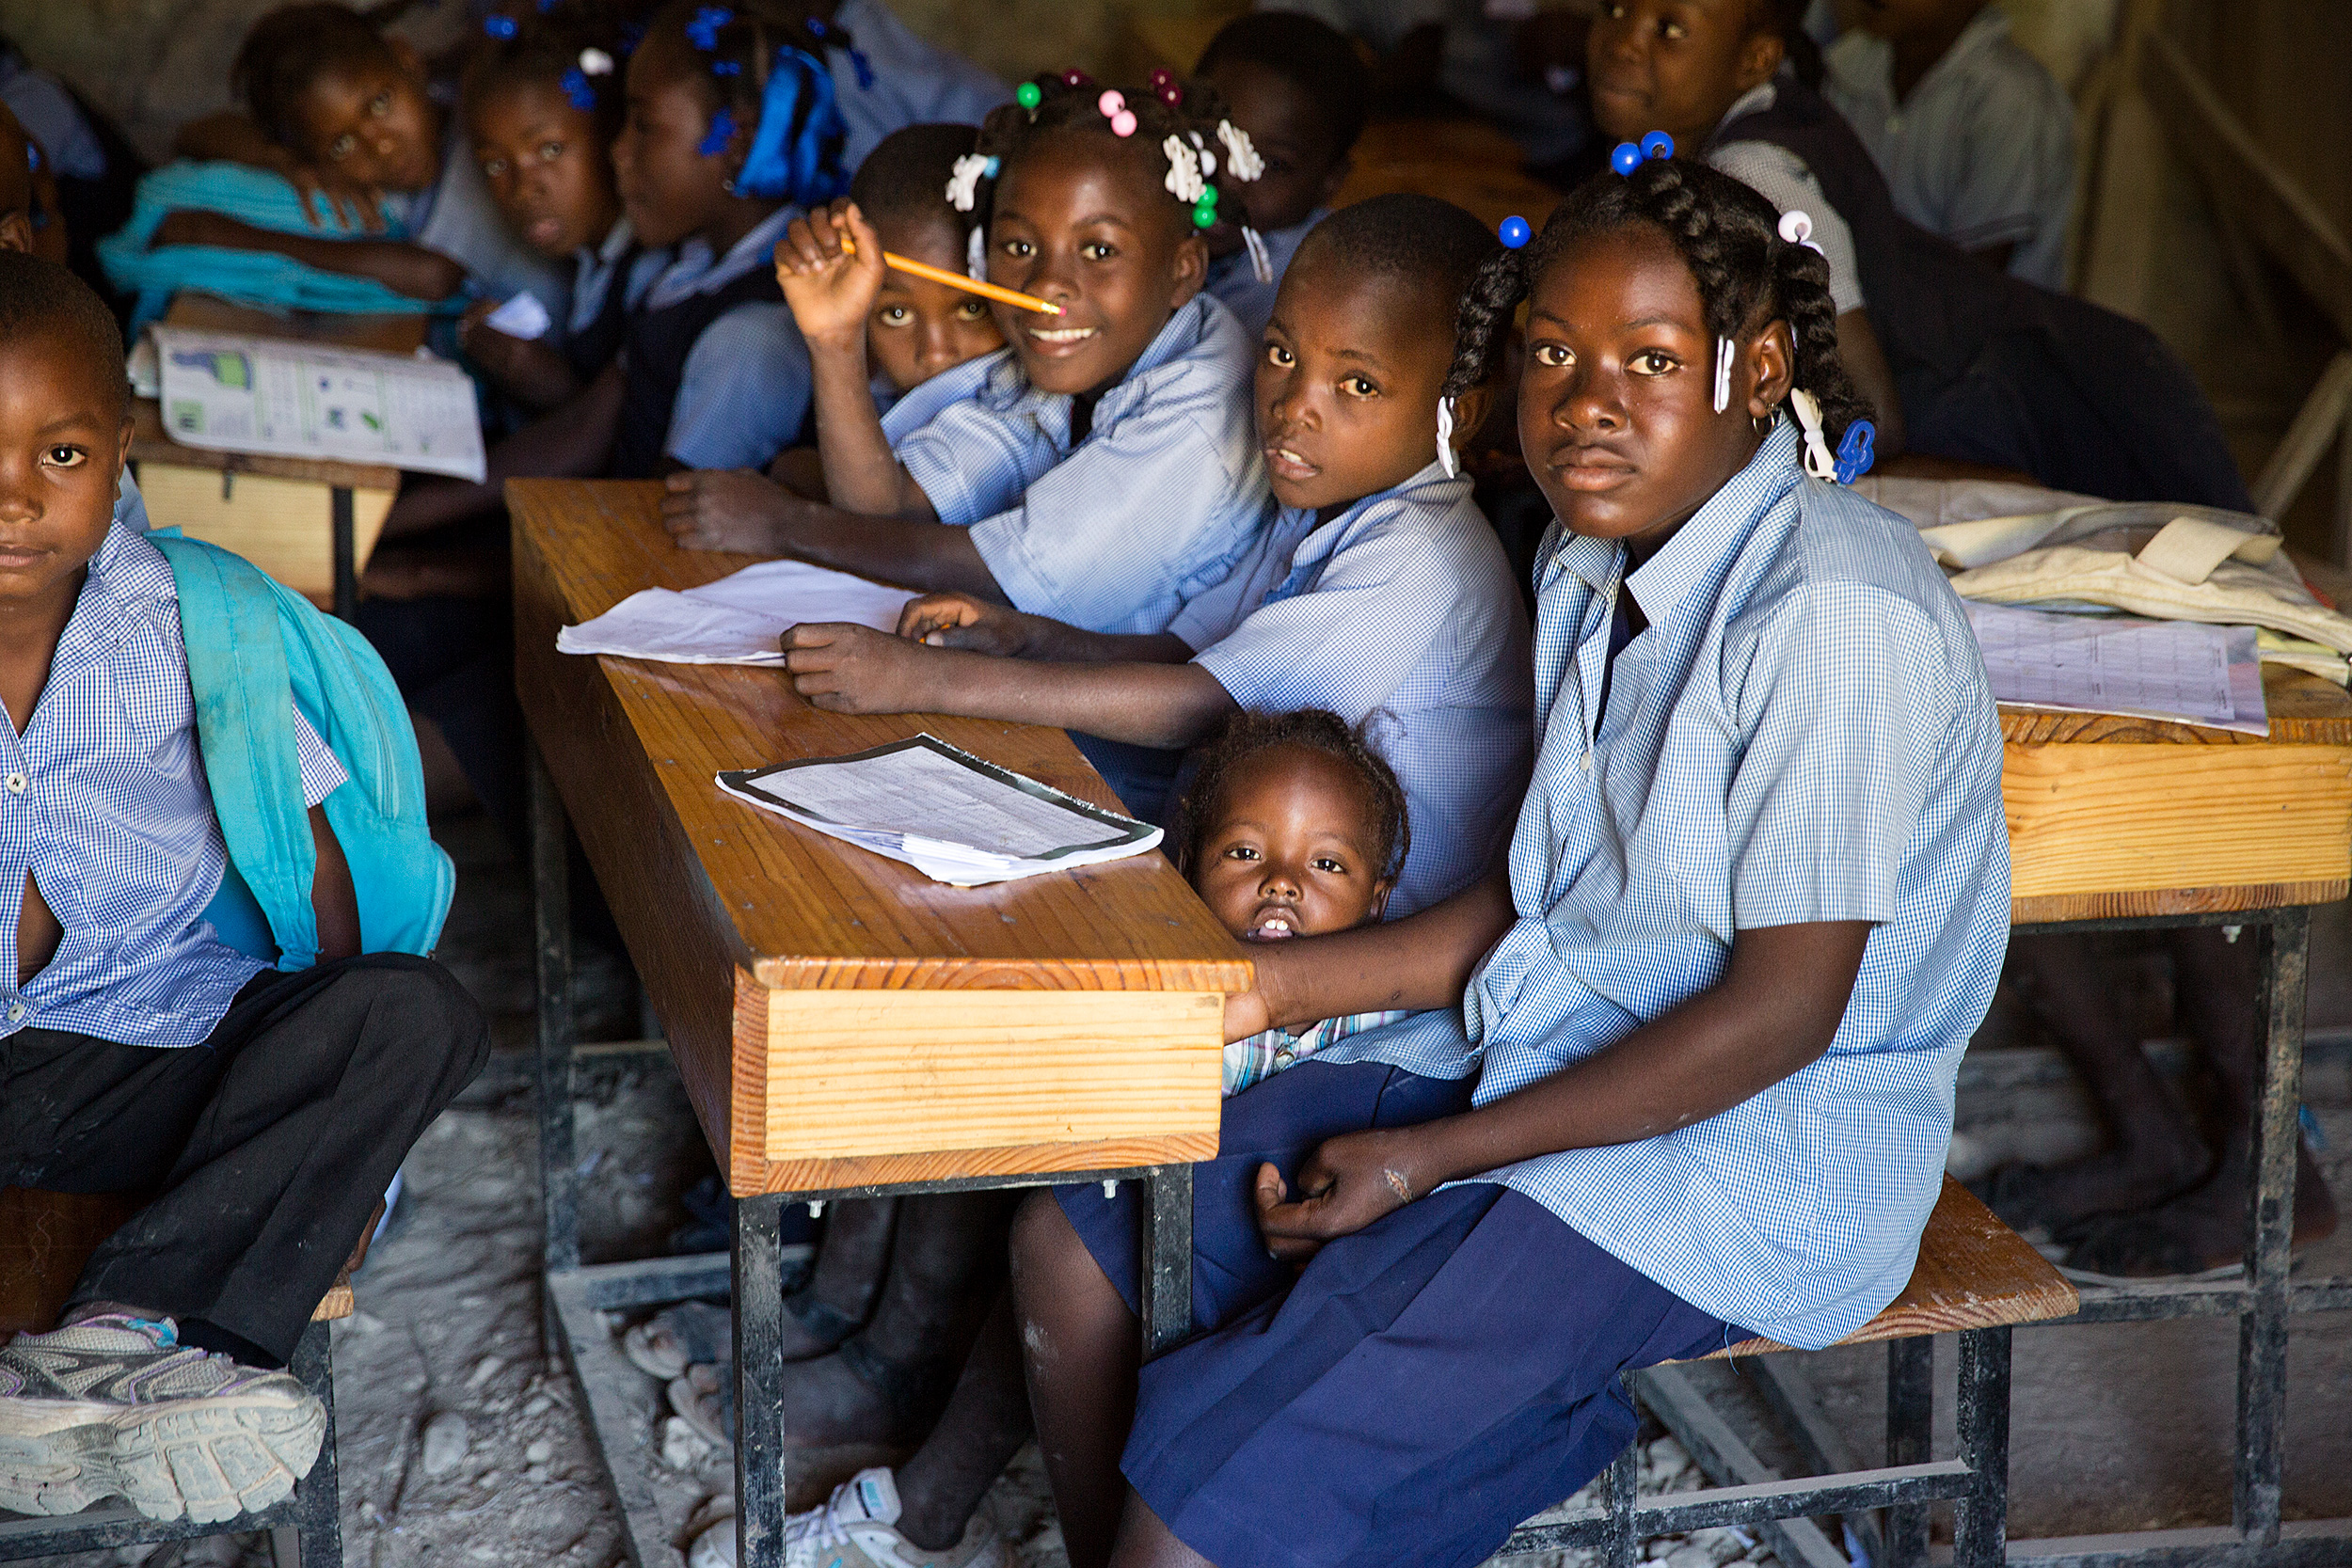 TRAVEL_HAITI_SCHOOL_schoolchildren_freethechildren_haitian_ngo_0454_WB